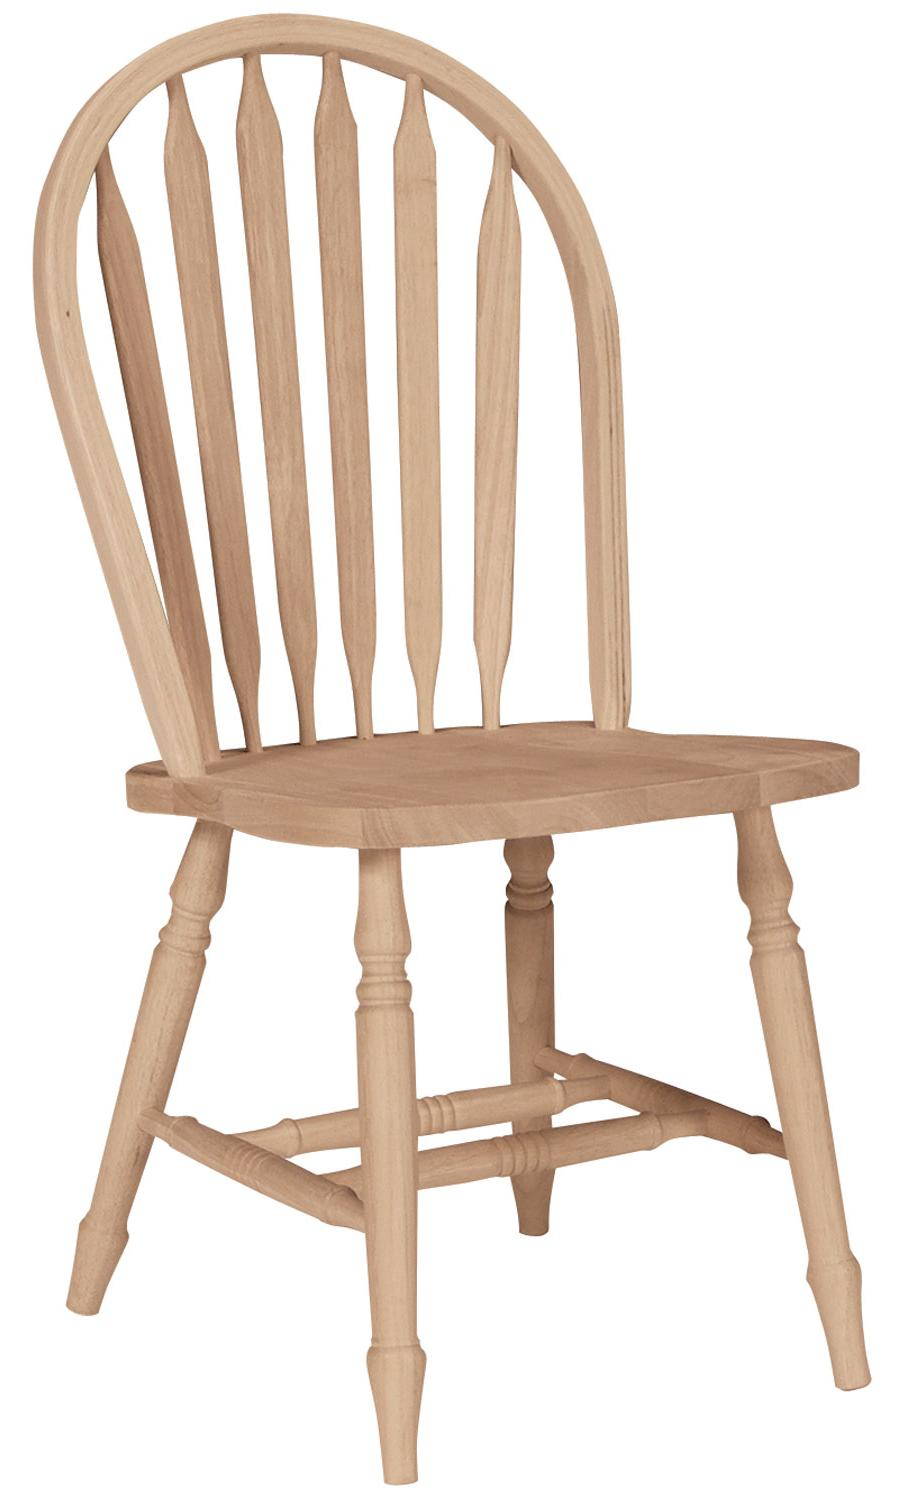 John Thomas SELECT Dining Arrowback Windsor Chair with Turned Legs - Item Number: 113T